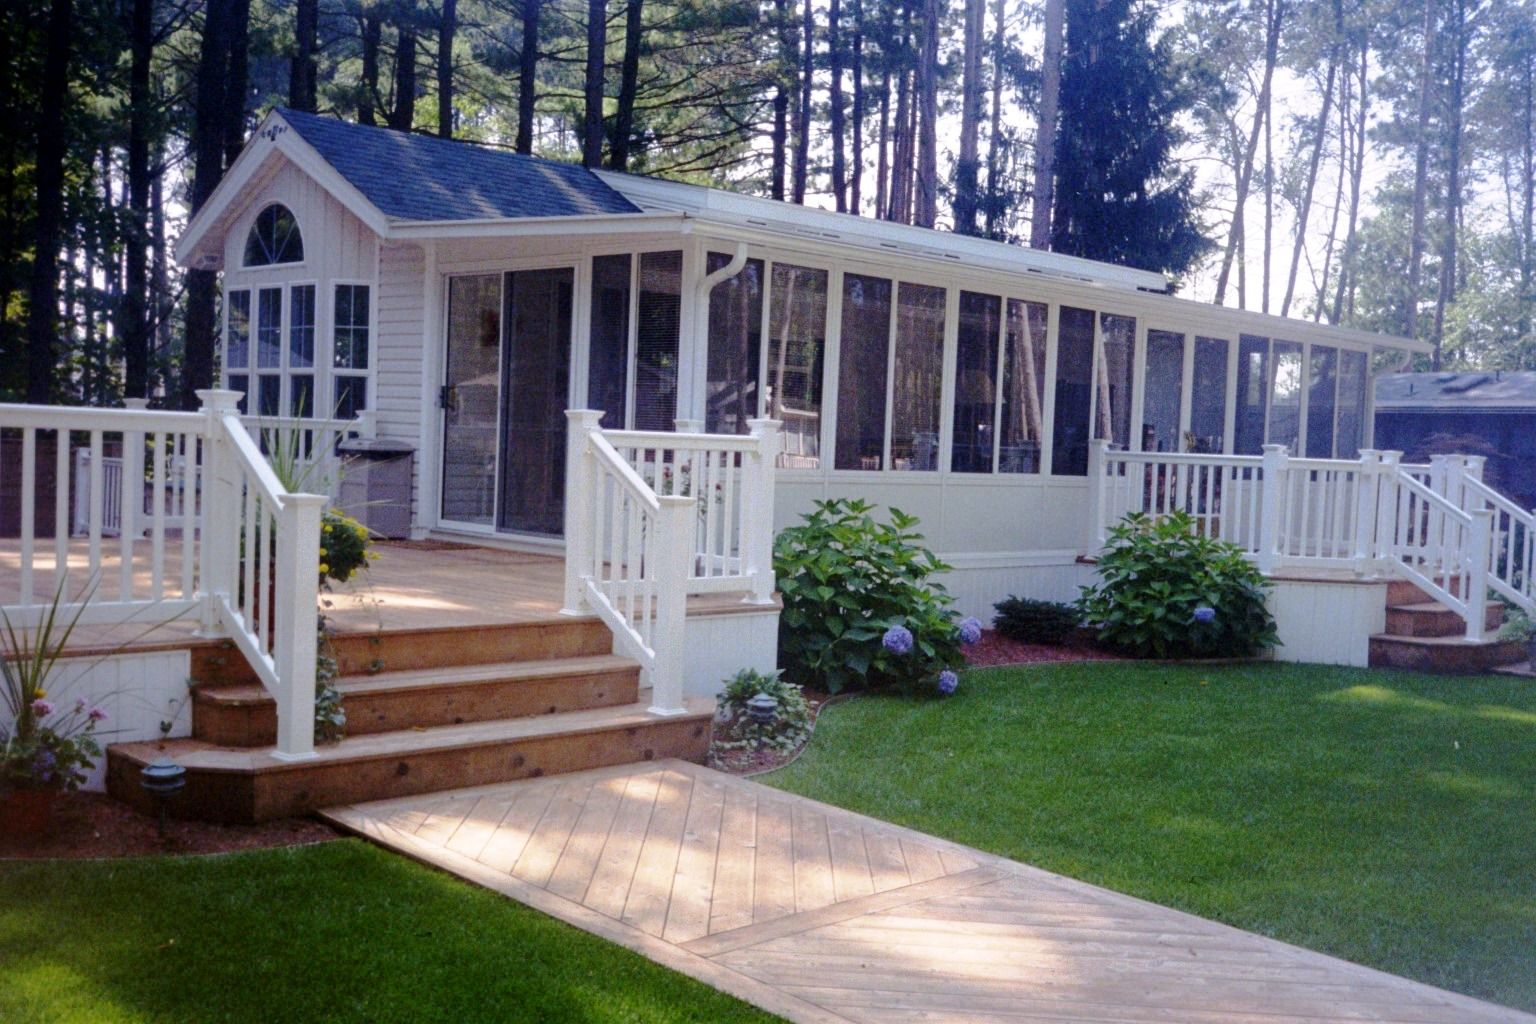 Mobile Homes Design Edepremcom Best Mobile Home Deck Design Ideas - Modern mobile home design